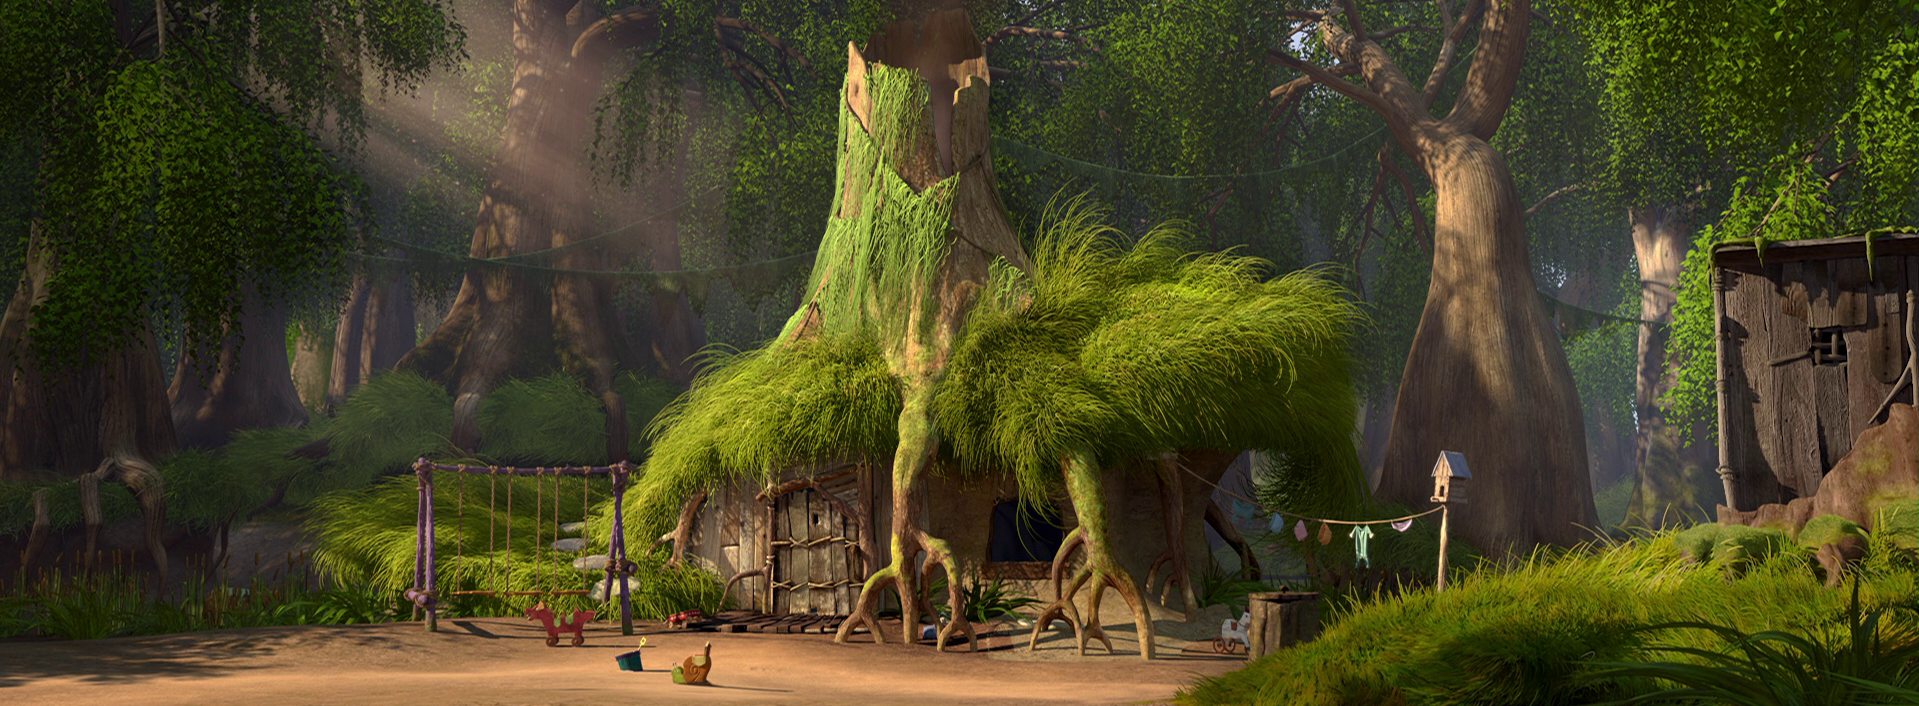 Shrek 1 Swamp 3086168 Hd Wallpaper Backgrounds Download